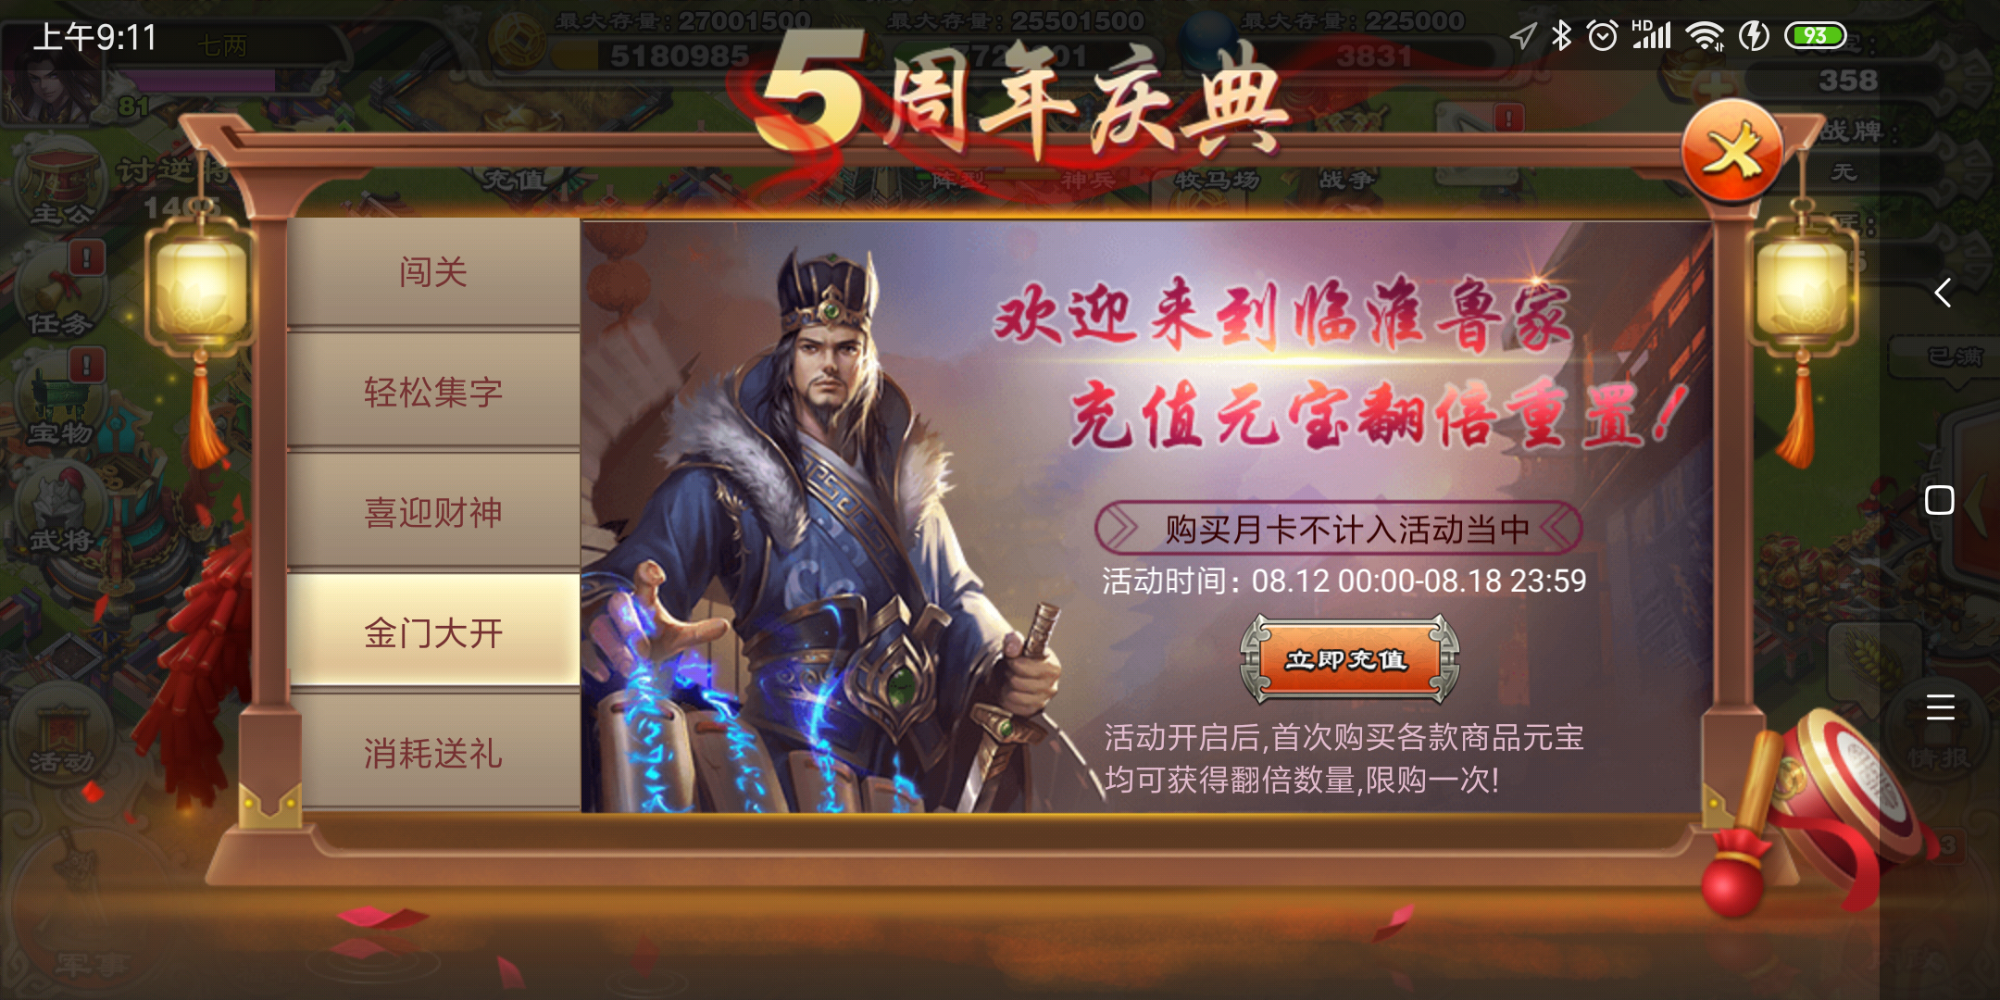 Screenshot_2019-08-13-09-11-12-739_com.qtz.game.jltx.png